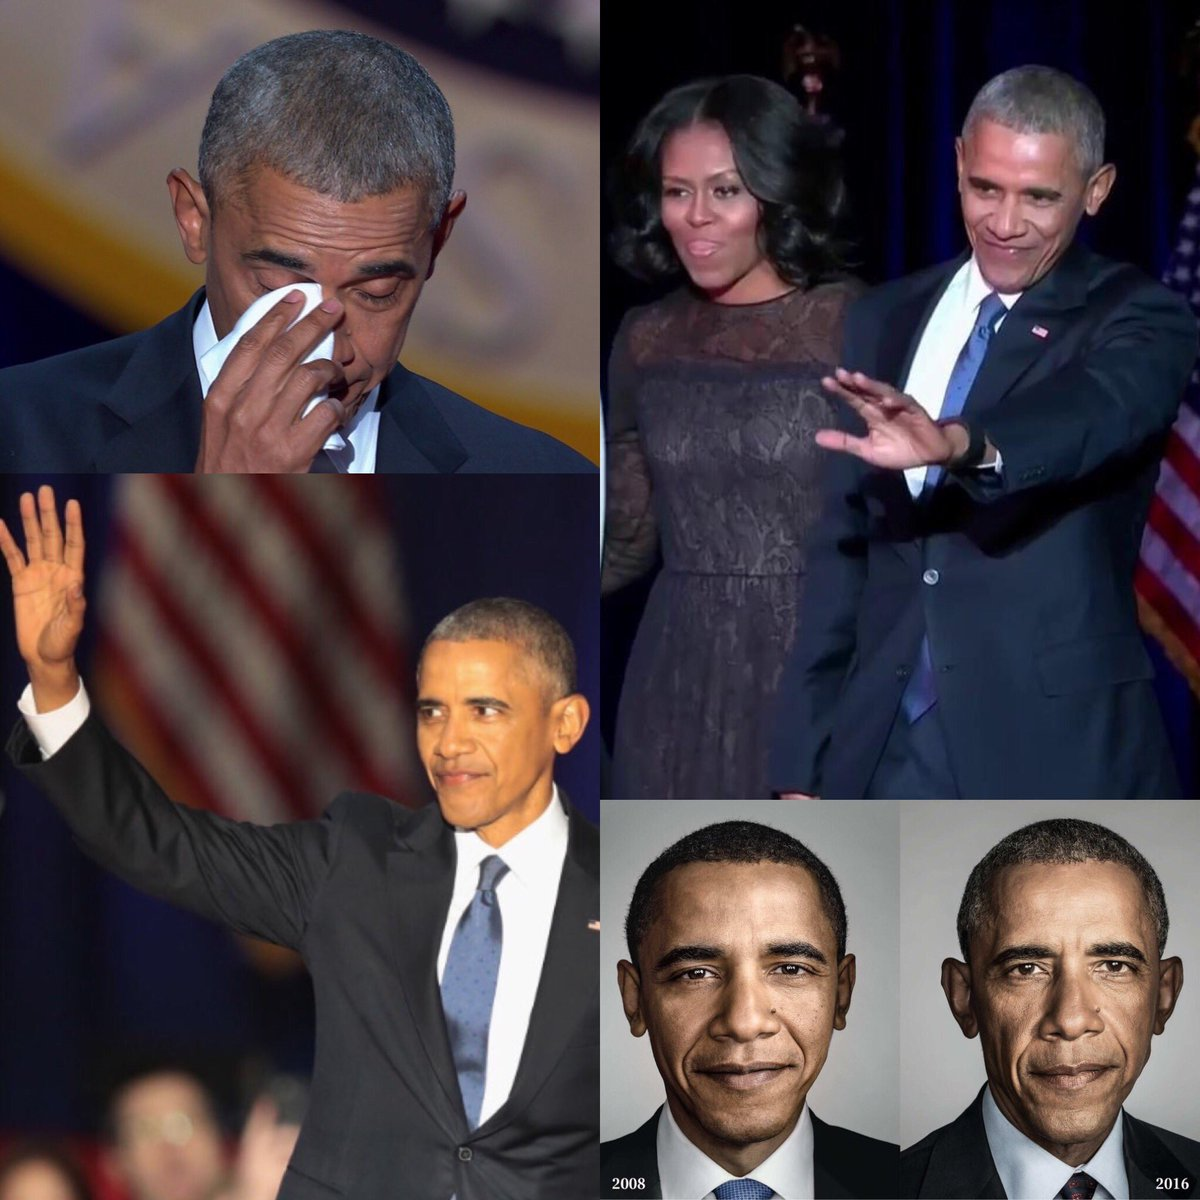 Discours d&#39;adieu de Barack Obama @BarackObama #BarackObama #Farewell #ObamaFarewell #FarewellObama 2008/16 Jan 2017:&quot;Yes we can, Yes We Did&quot;<br>http://pic.twitter.com/z2f2ZFATMX